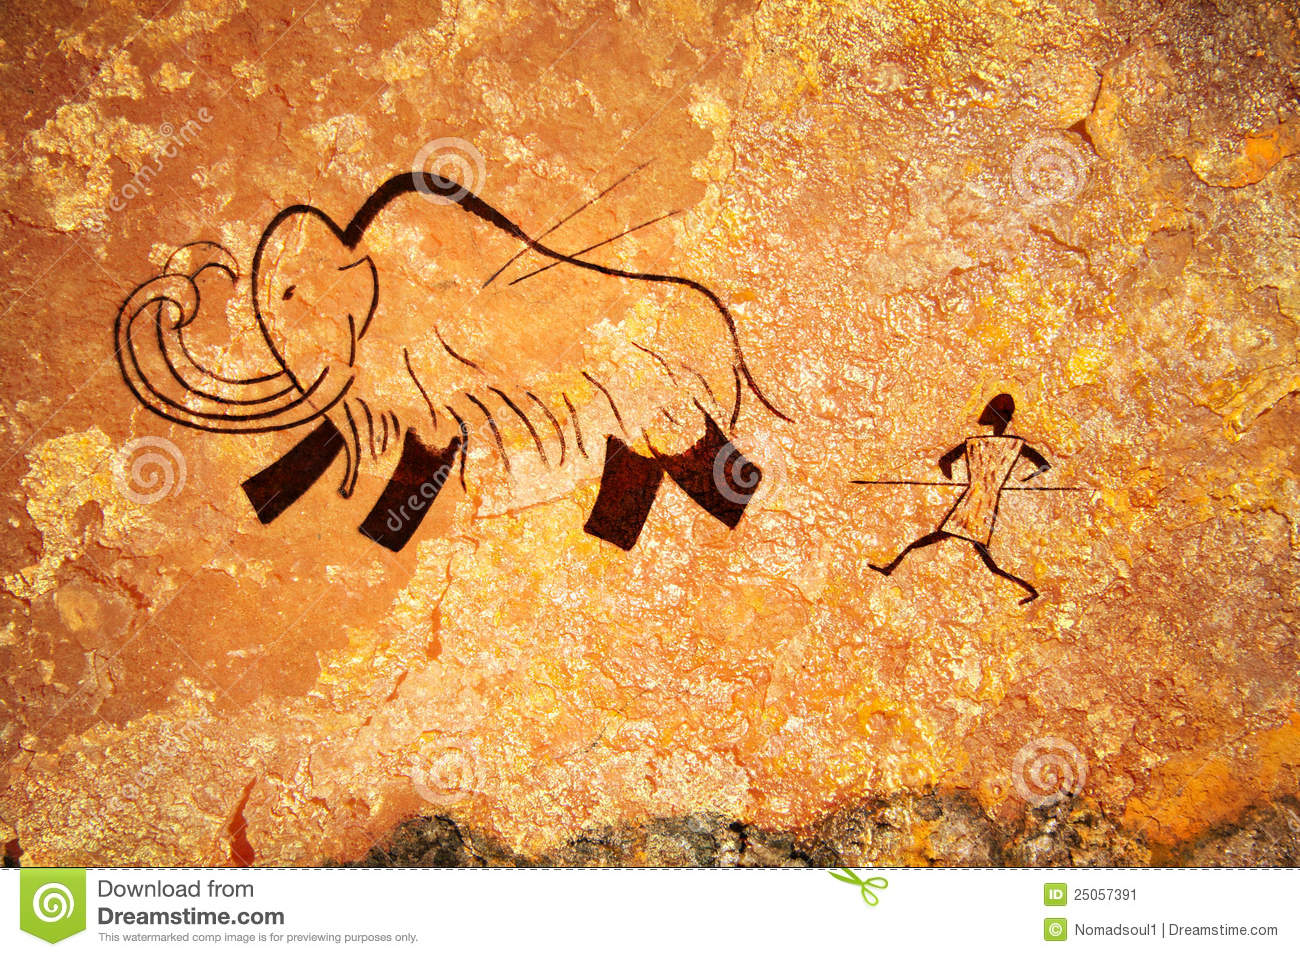 Cave Painting Of Primitive Hunt Stock Image - Image: 25057391